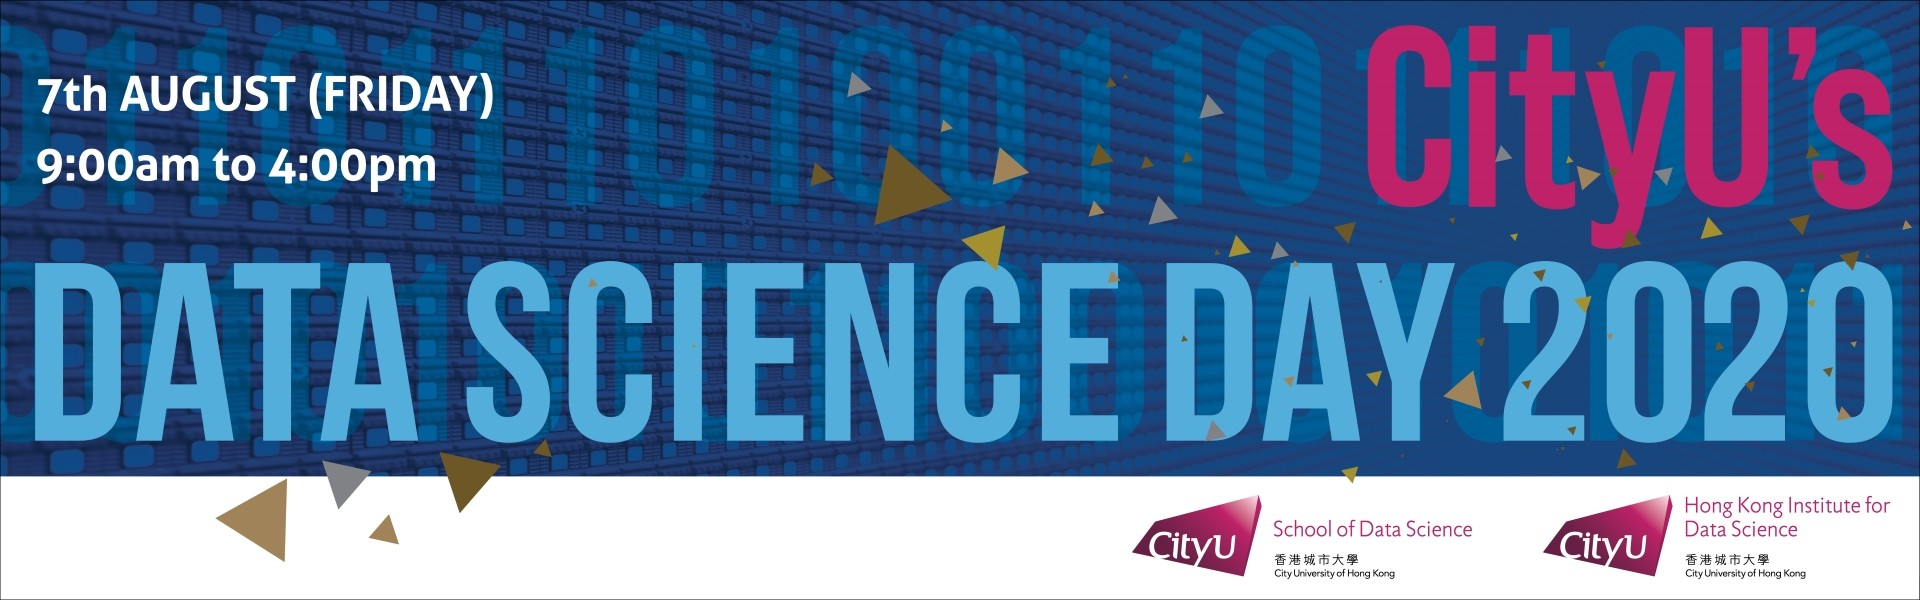 Data Science Day 2020